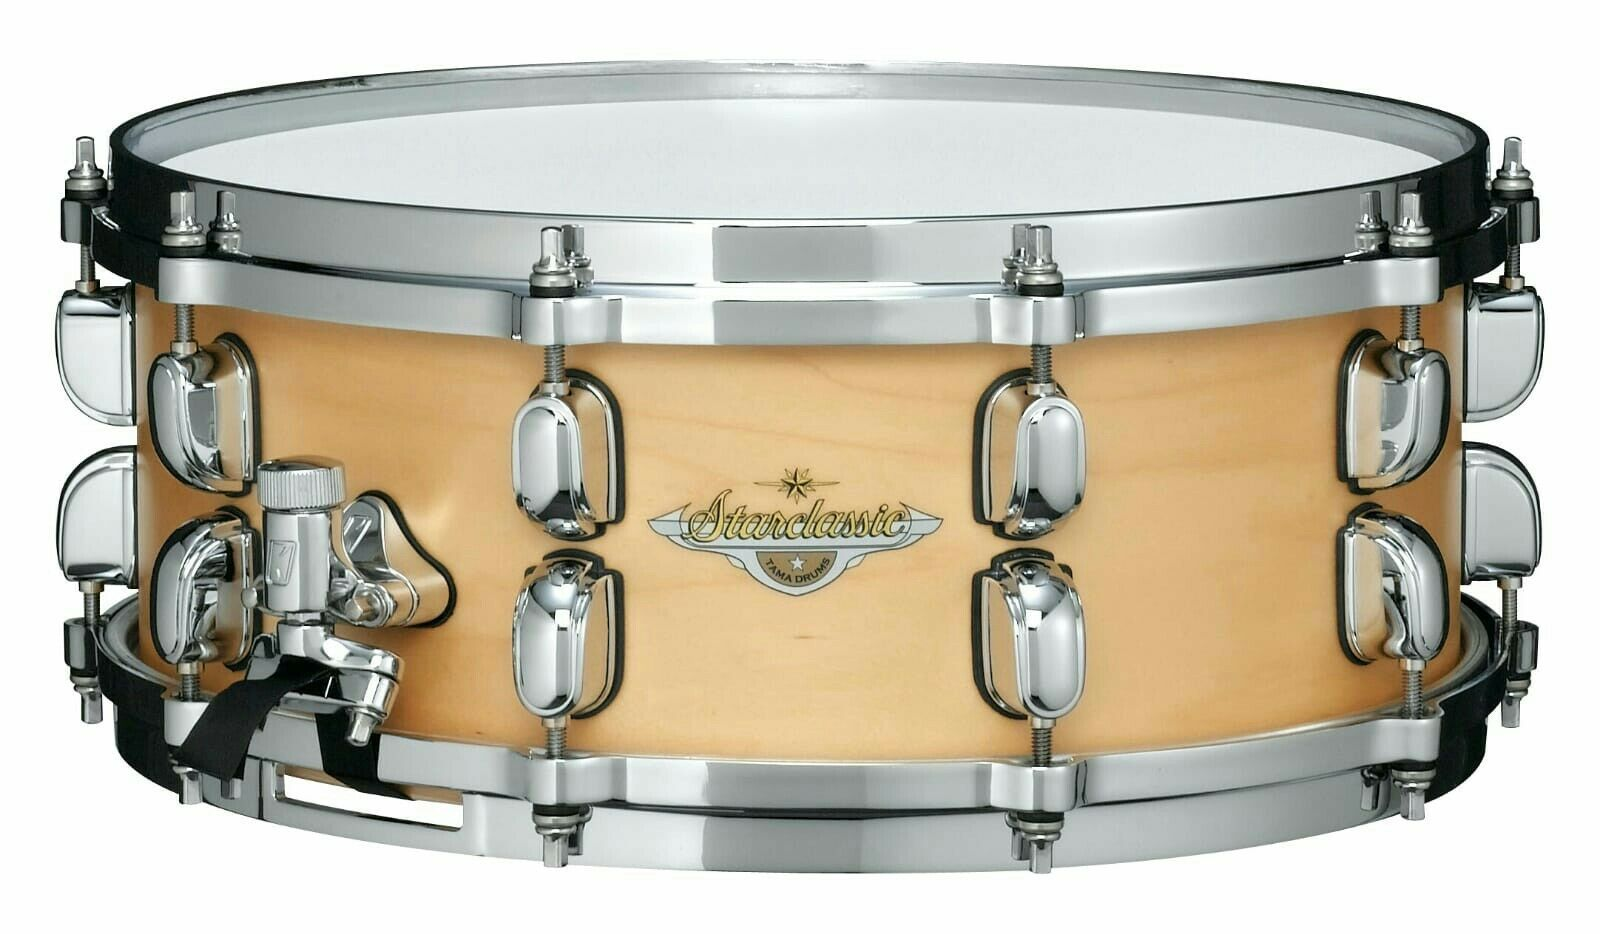 Tama Starclassic mas1465-atm Maple Snare Drum Antique Maple, 14  x 6,5